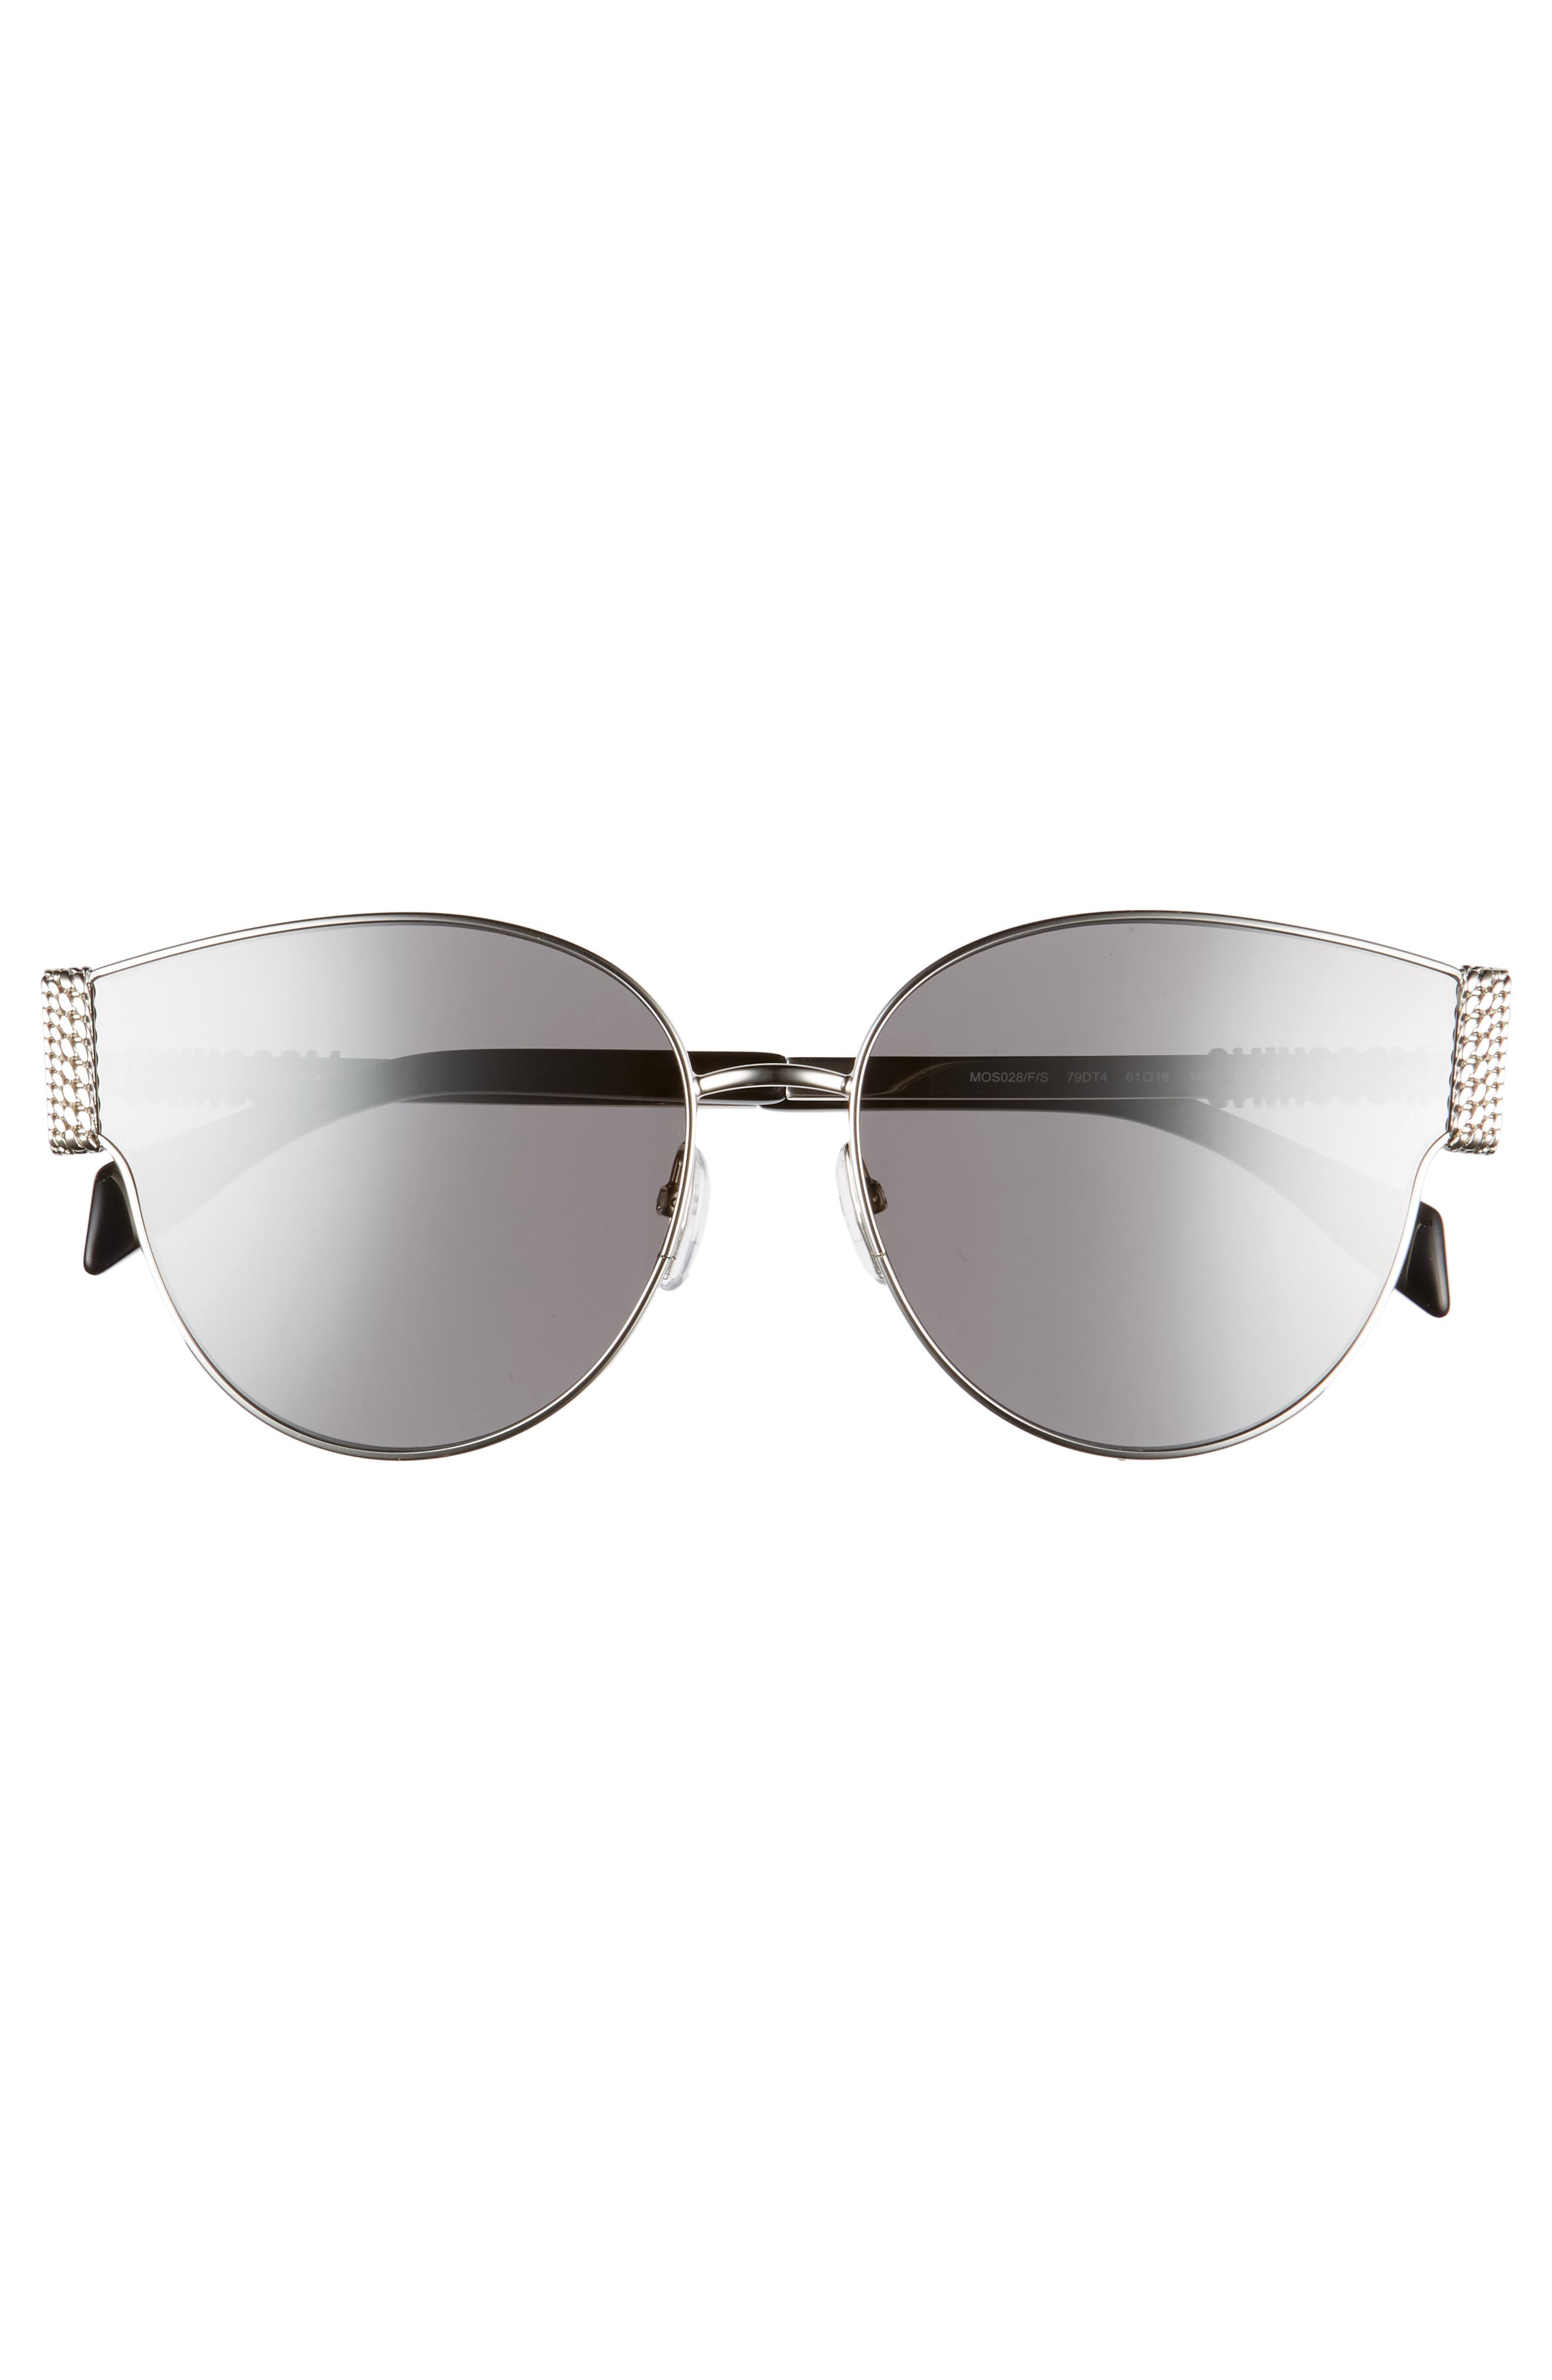 MOSCHINO, 61mm Special Fit Cat Eye Sunglasses, Alternate thumbnail 3, color, SILVER/ BLACK